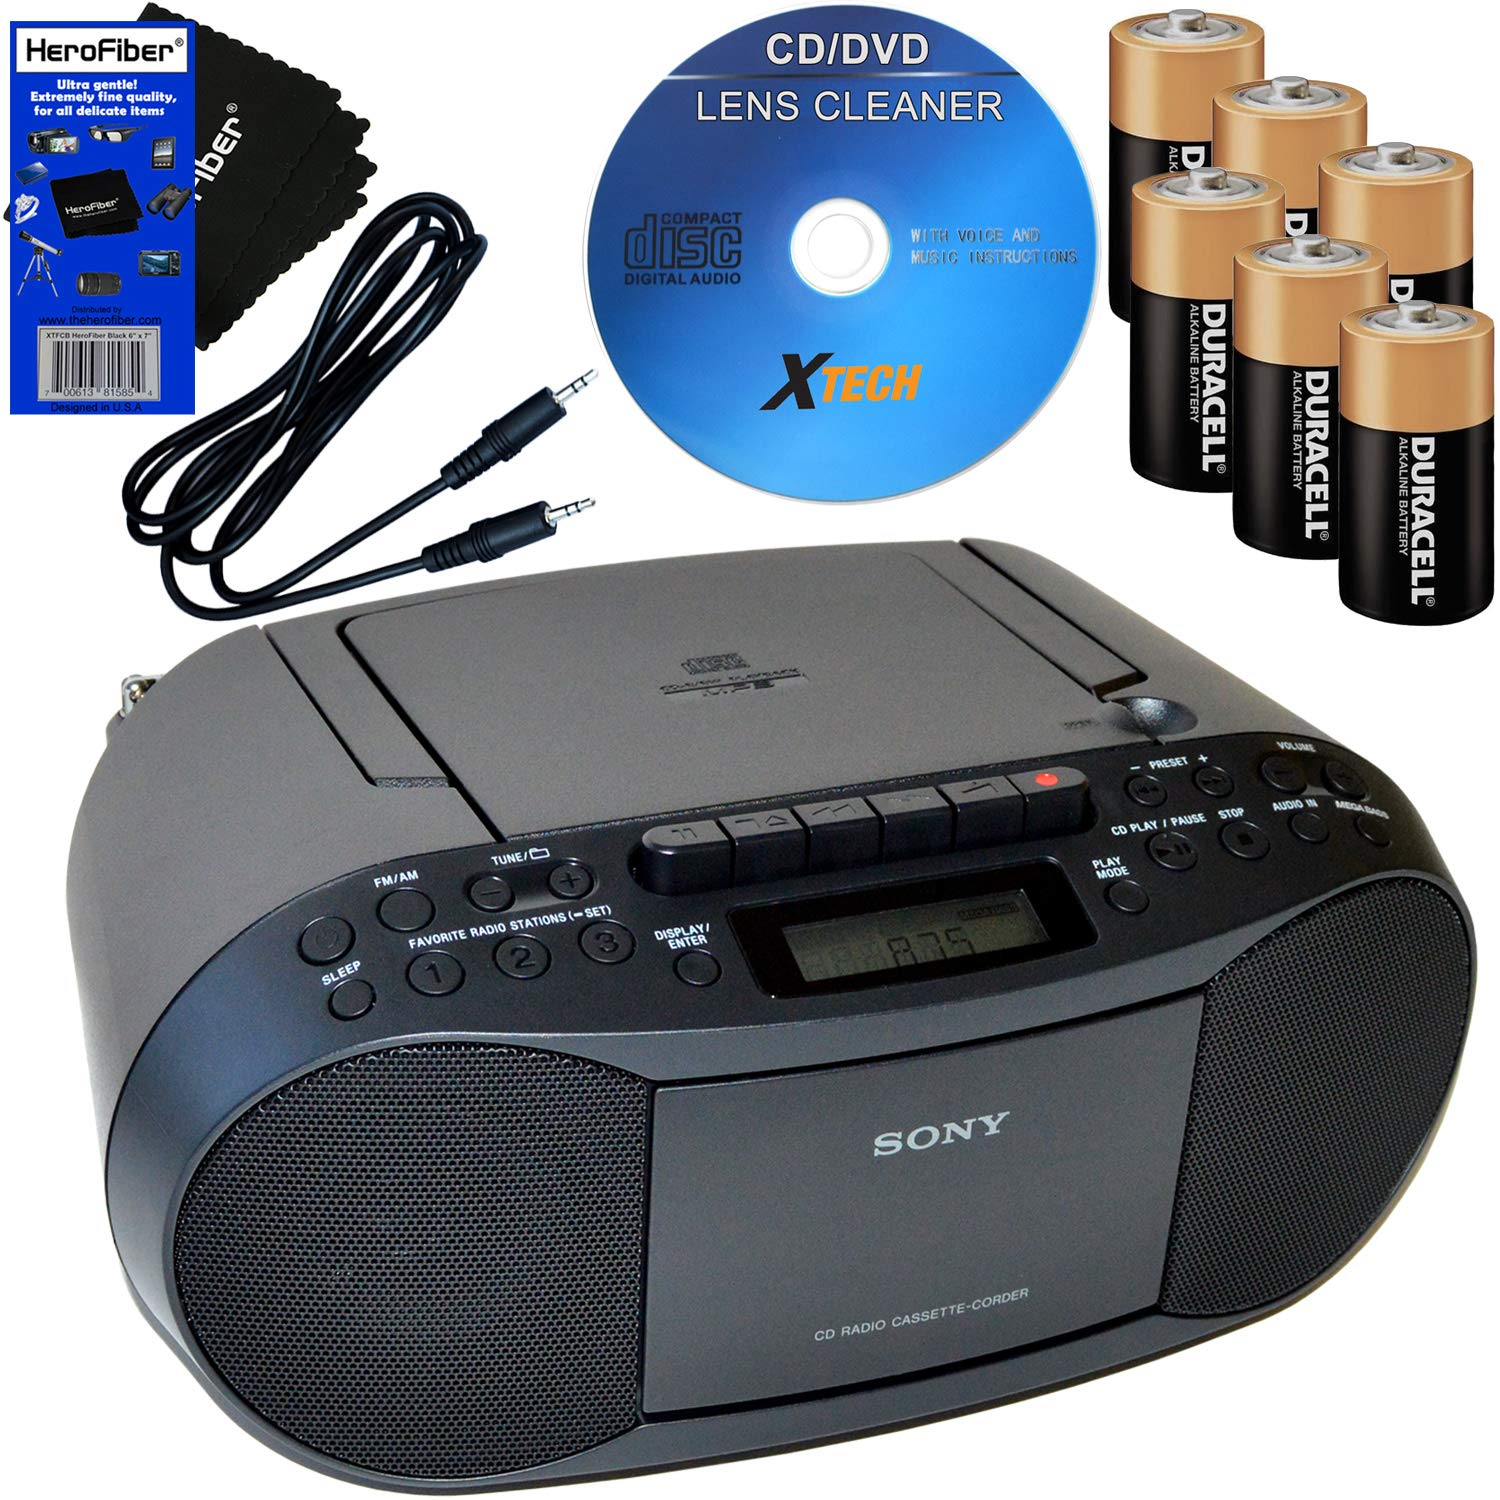 Sony Portable CD Player Boombox with AM/FM Radio & Cassette Tape Player + 6 Batteries + CD Maintenance Kit + Auxiliary Cable for Smartphones, MP3 Players & HeroFiber Ultra Gentle Cleaning Cloth